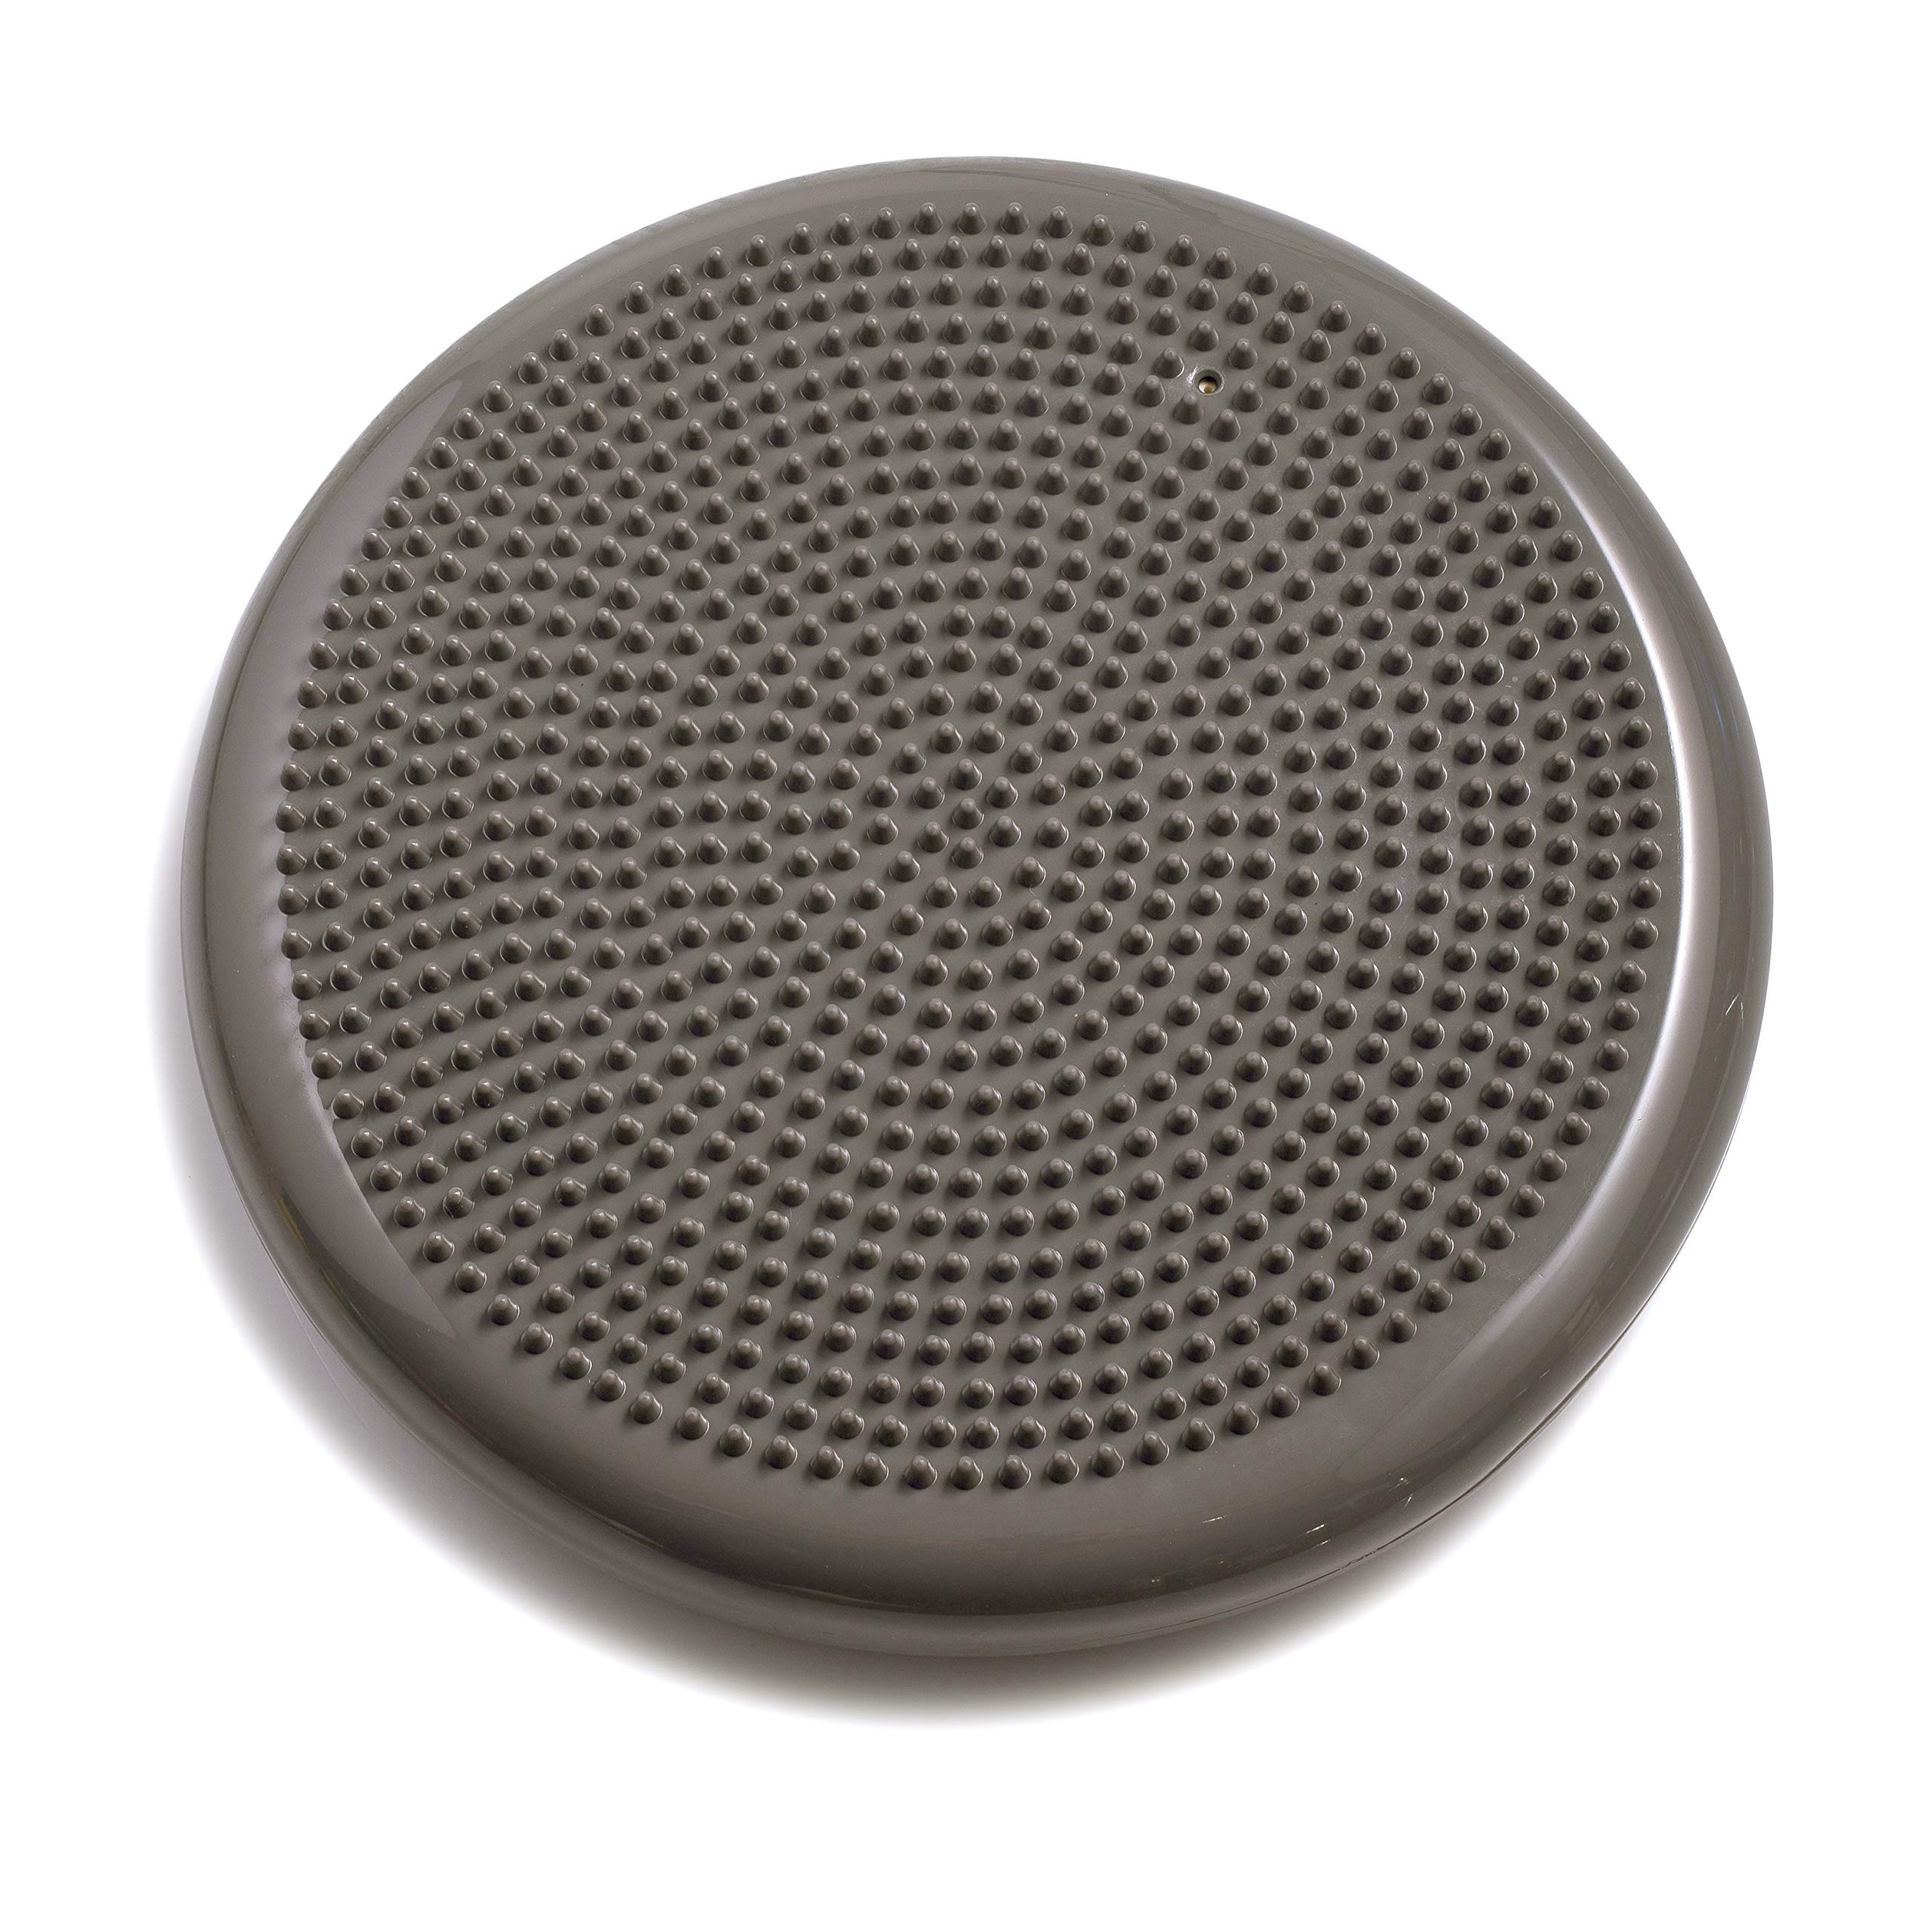 bintiva Inflated Stability Wobble Cushion, Including Free Pump/Exercise Fitness Core Balance Disc, Gray, 13 inches(33 cm) by bintiva (Image #2)